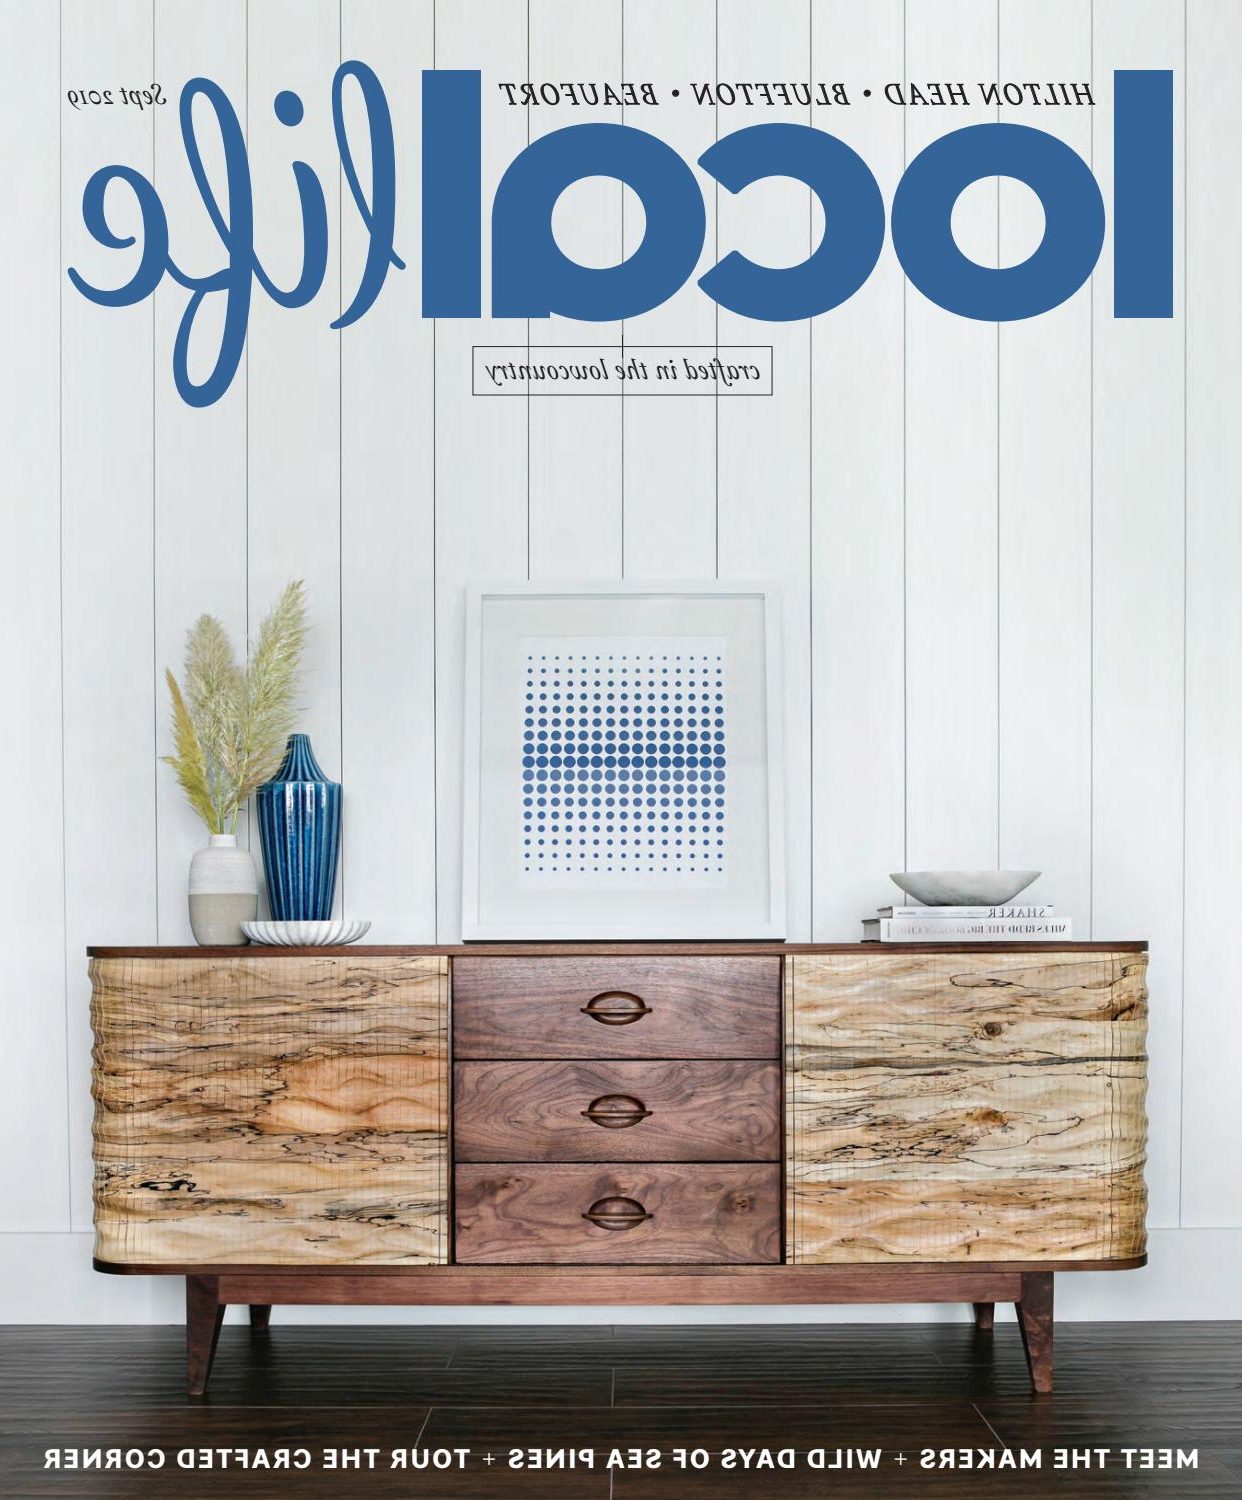 Local Life Magazine September 2019Locallife – Issuu Pertaining To Desert Crystals Theme Credenzas (View 14 of 20)